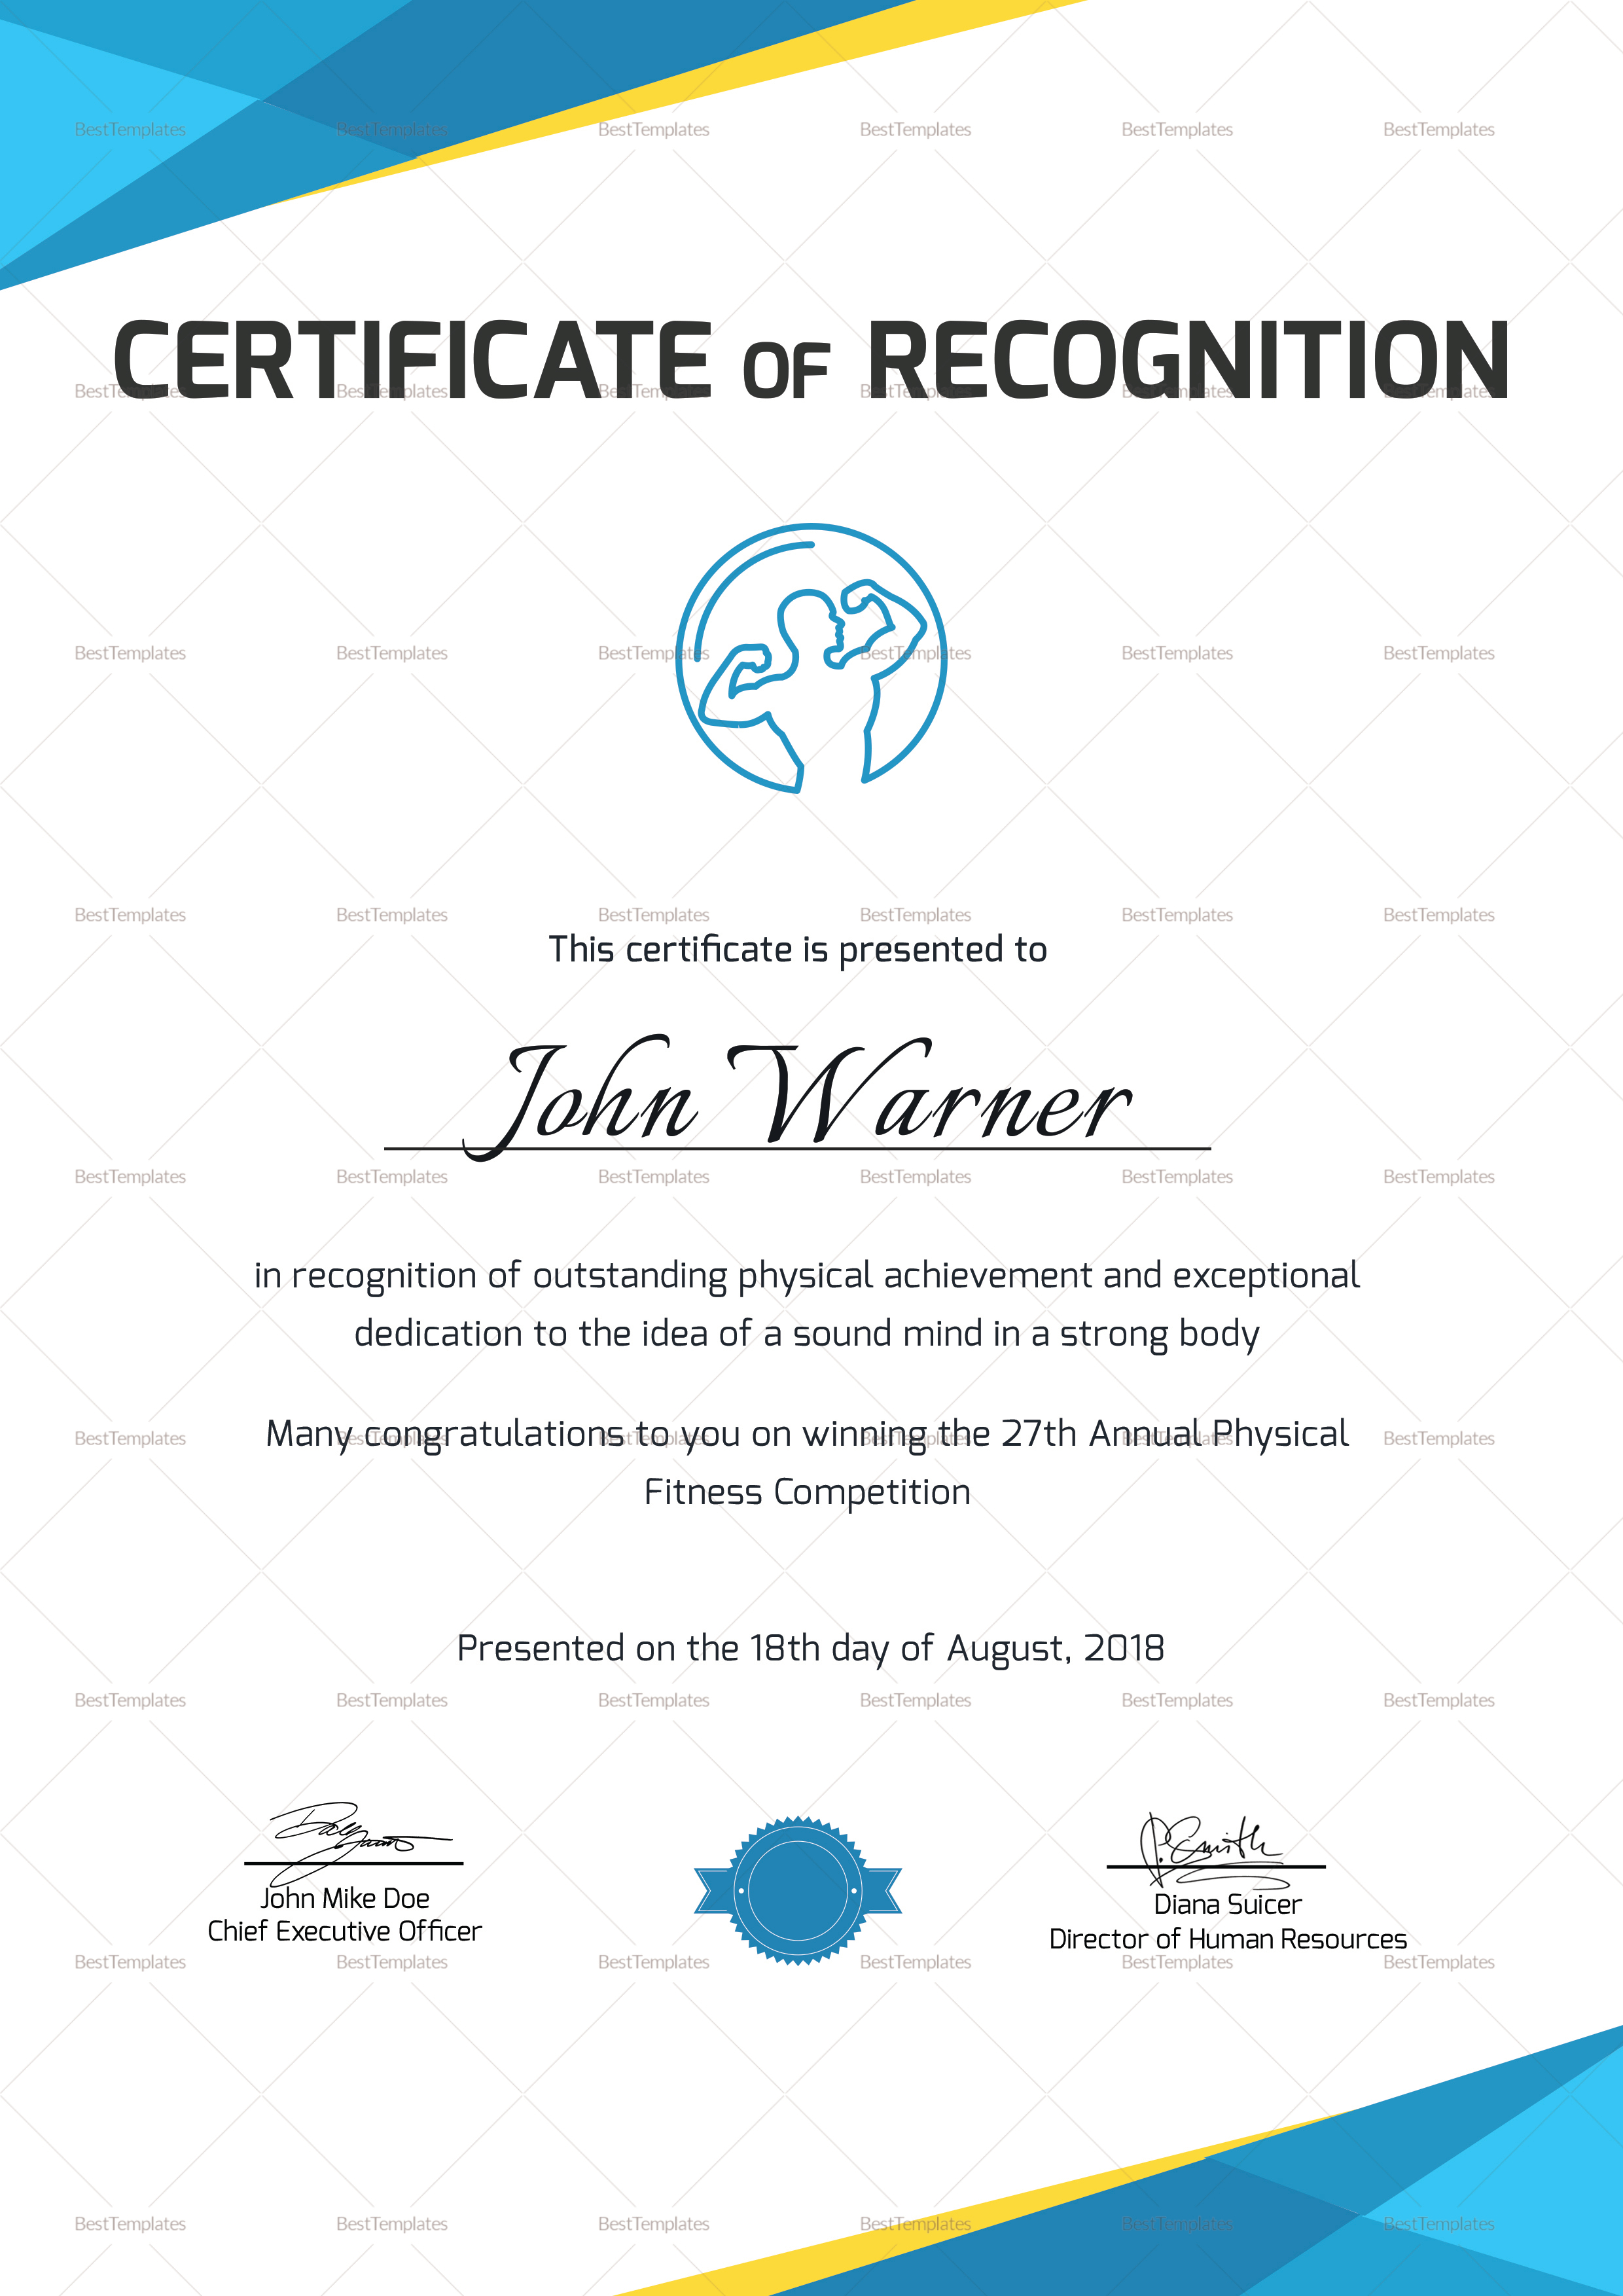 Physical Fitness Recognition Certificate Design Template